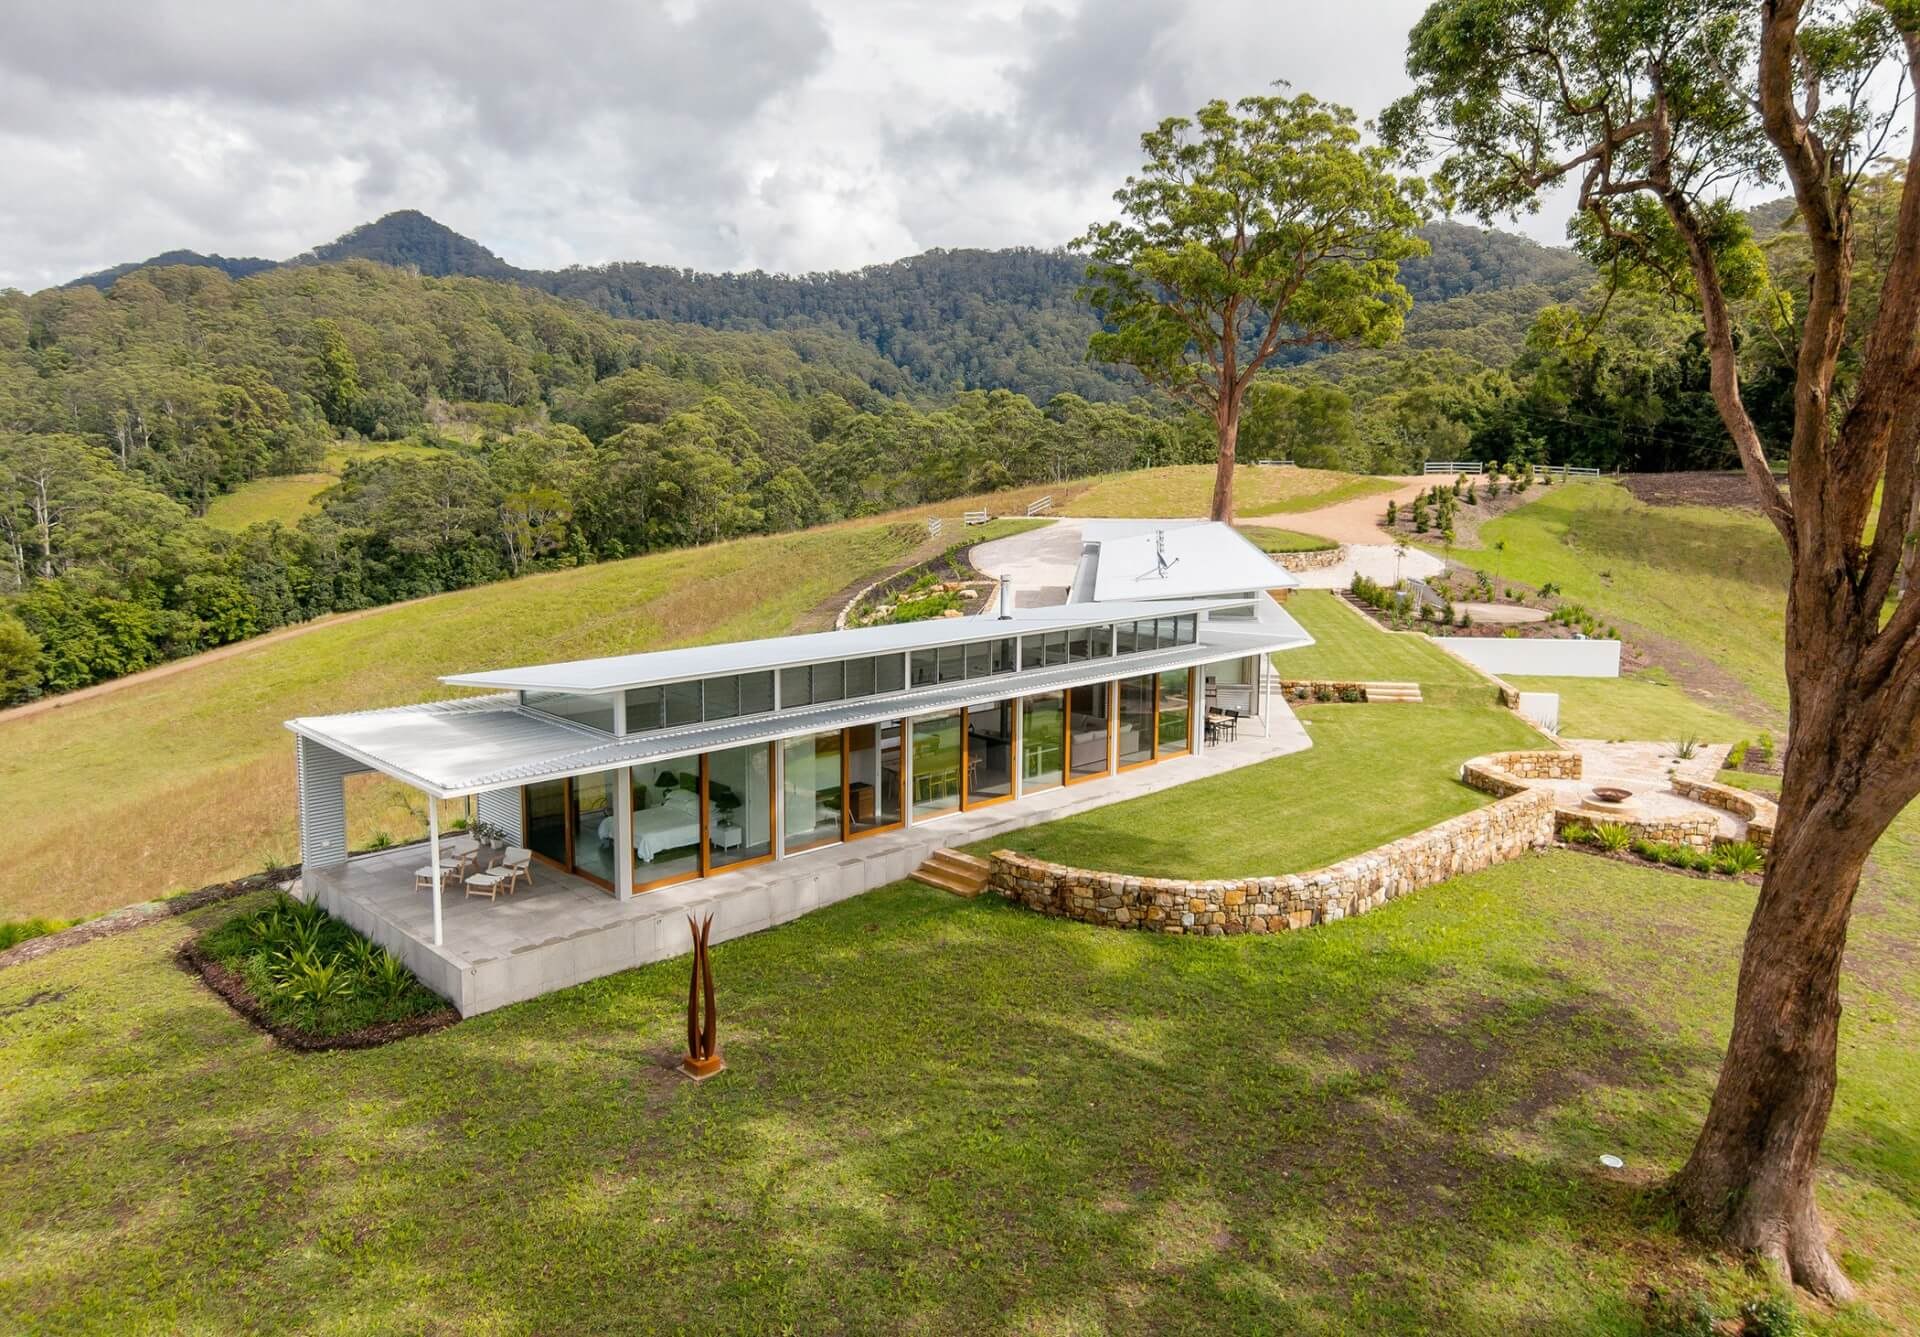 Upper orara house utz sanby architects for Rural home designs